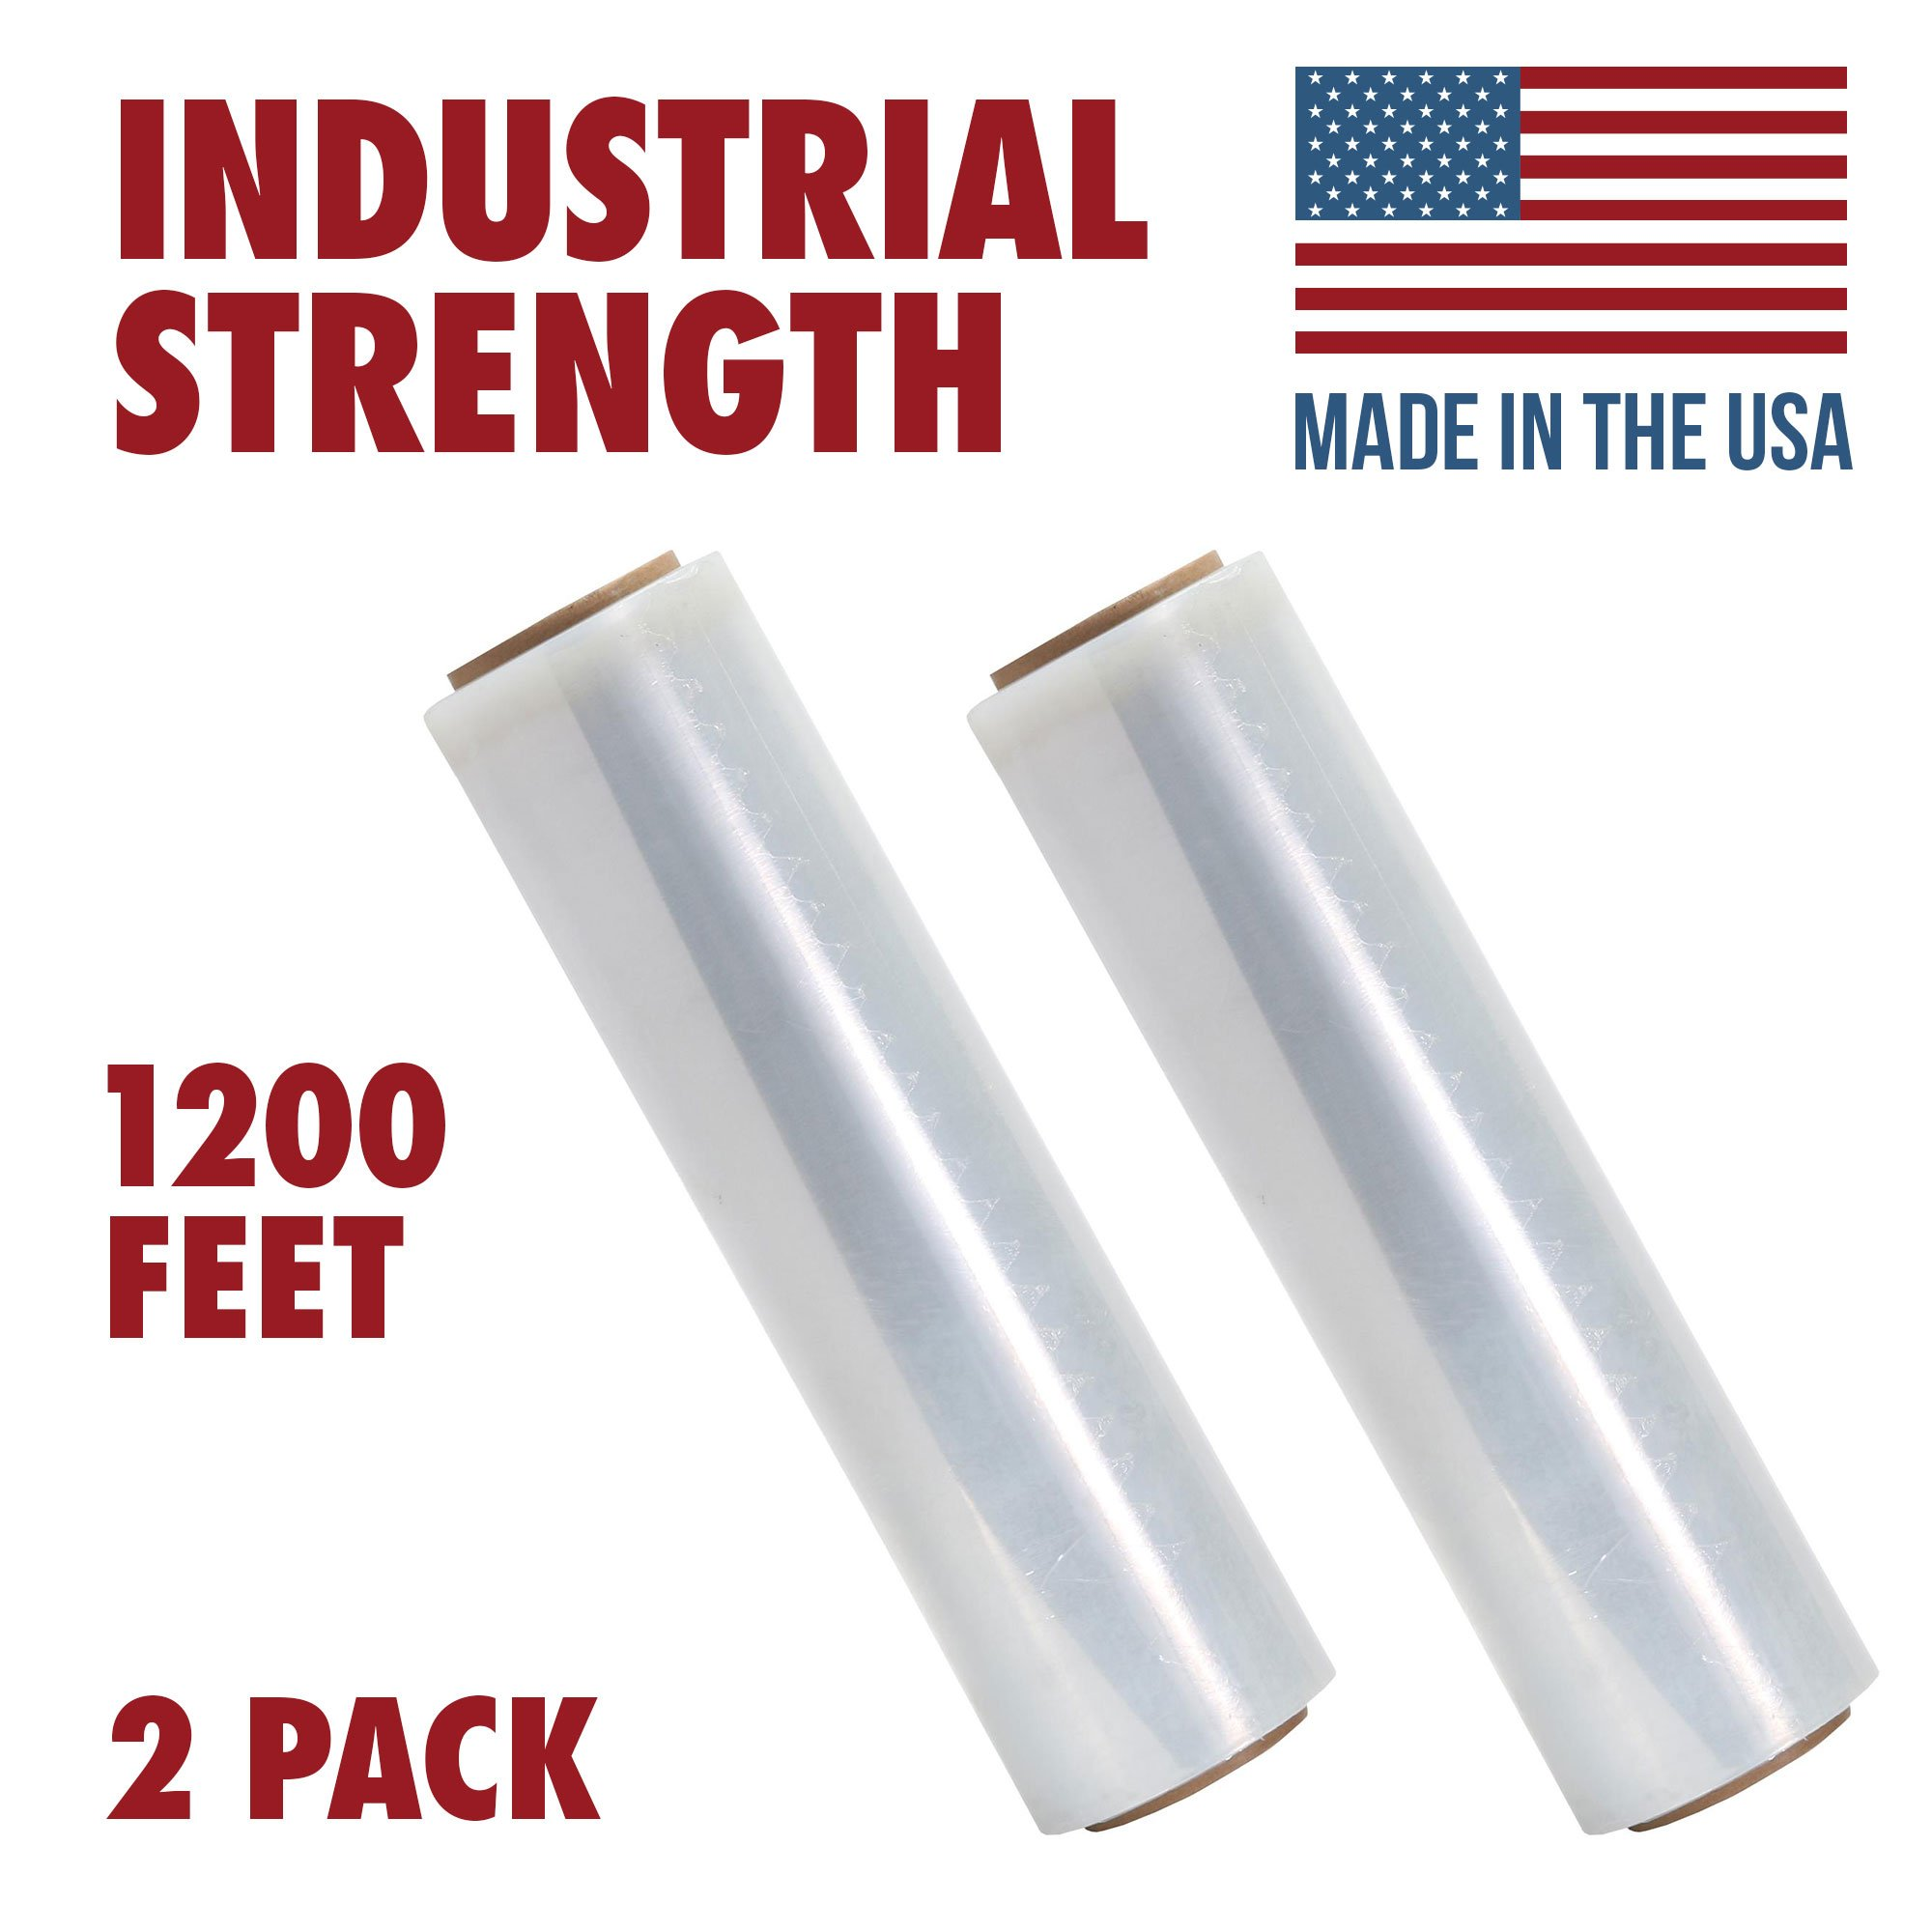 18 X 1200 Tough Pallet Shrink Wrap, 80 Gauge 18 Inch X 1200 feet Industrial Strength, Commercial Grade Strength Film, Moving & Packing Wrap, For Furniture, Boxes, Pallets (2-Pack)